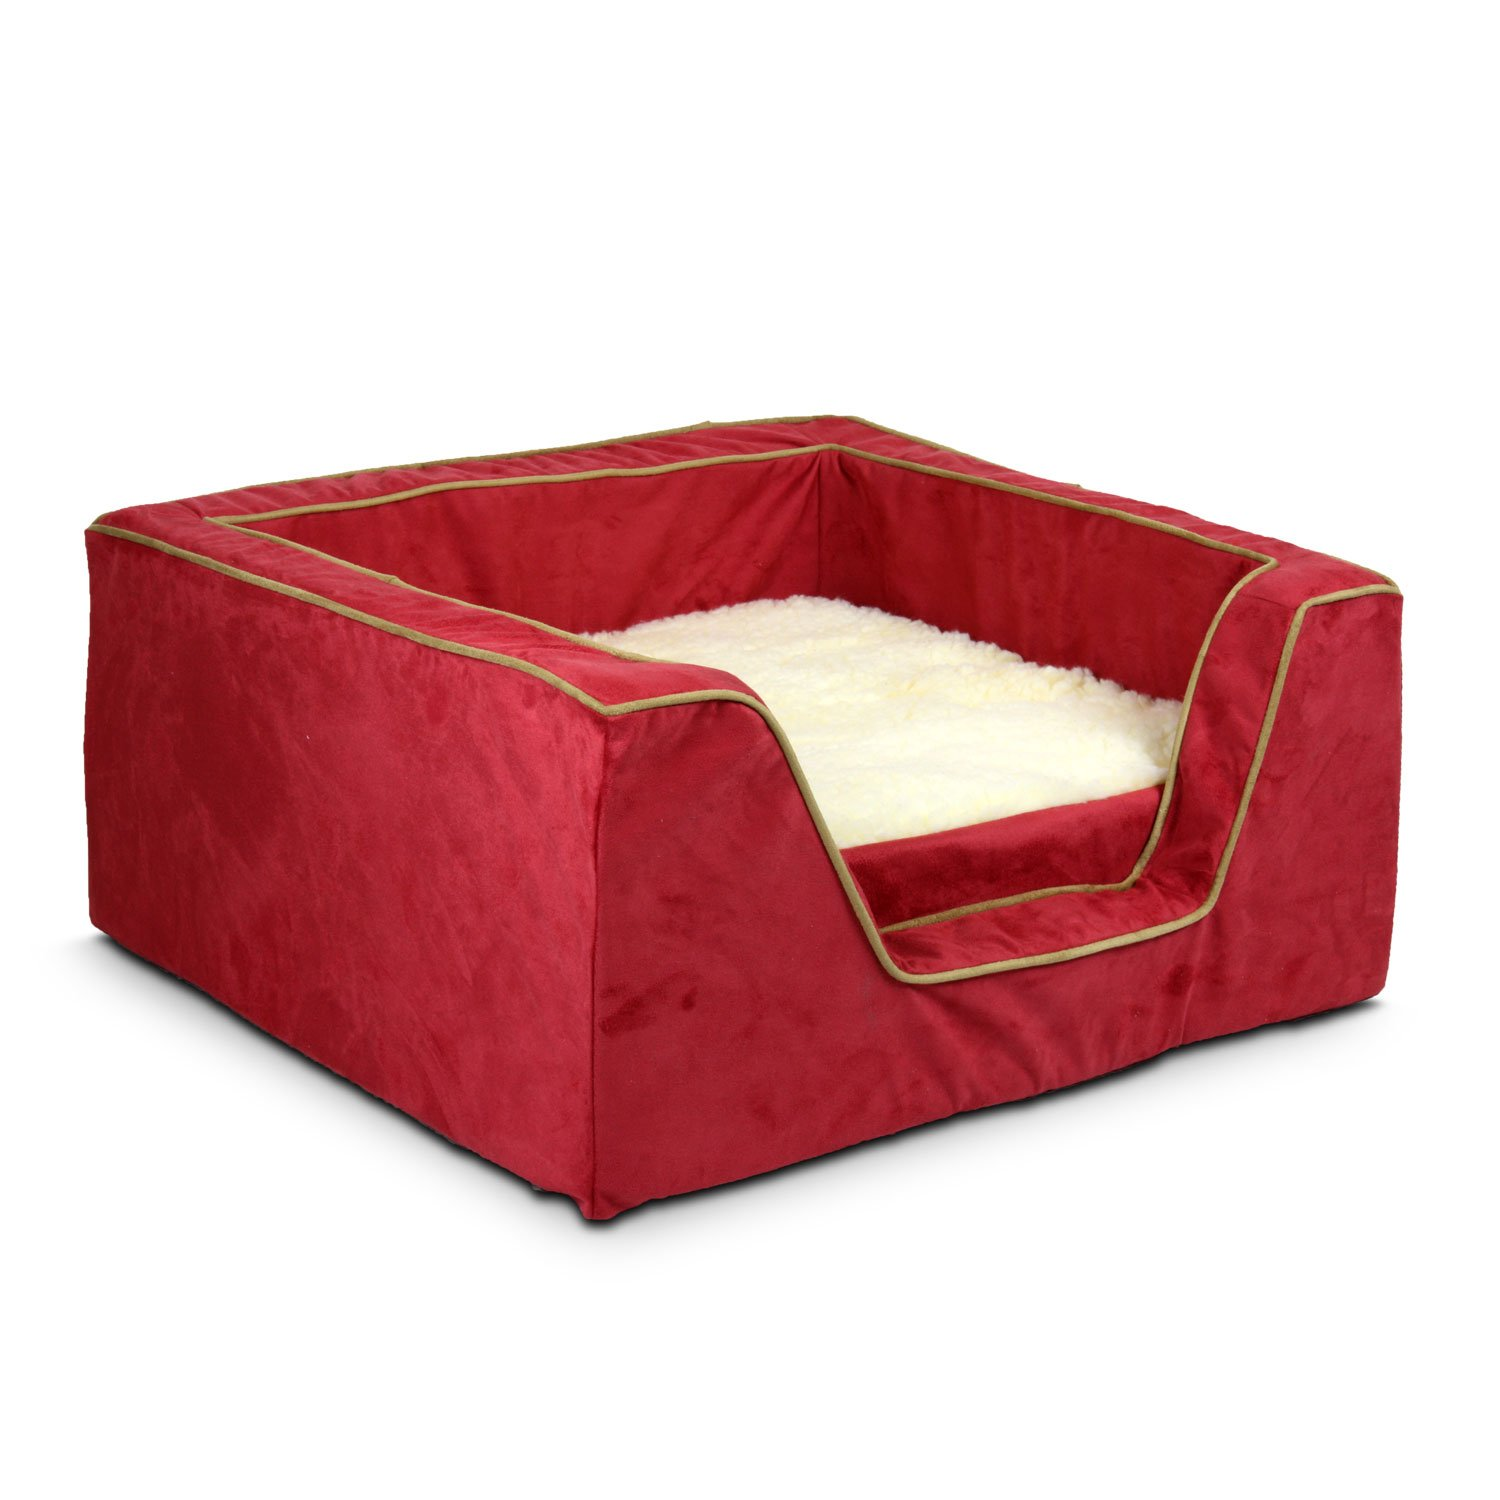 Snoozer Luxury Square Bed with Memory Foam in Red with Camel Cording